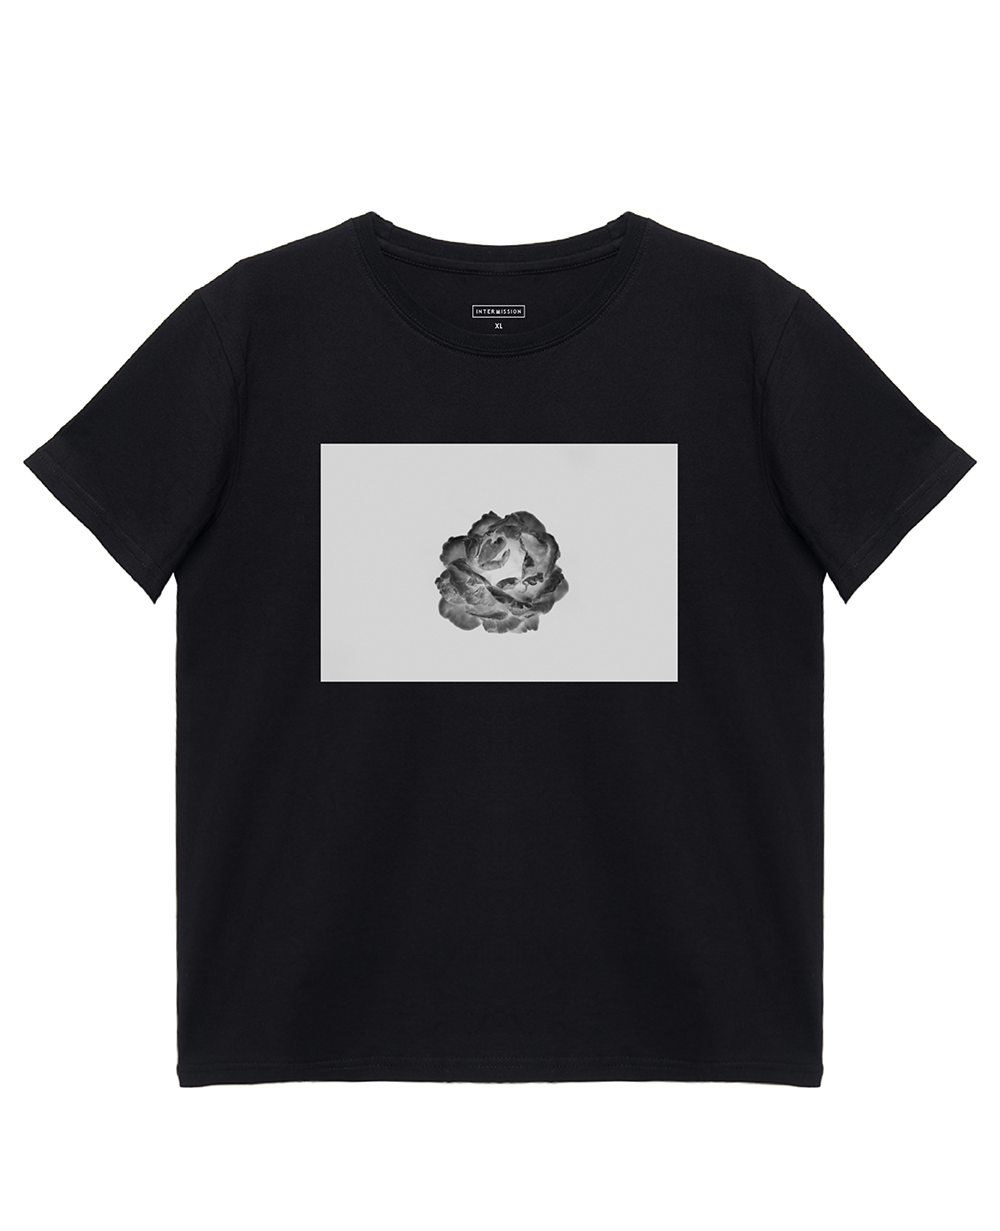 White Rose Print T-Shirt in Black - T-Shirts - INTERMISSION - BRANMA